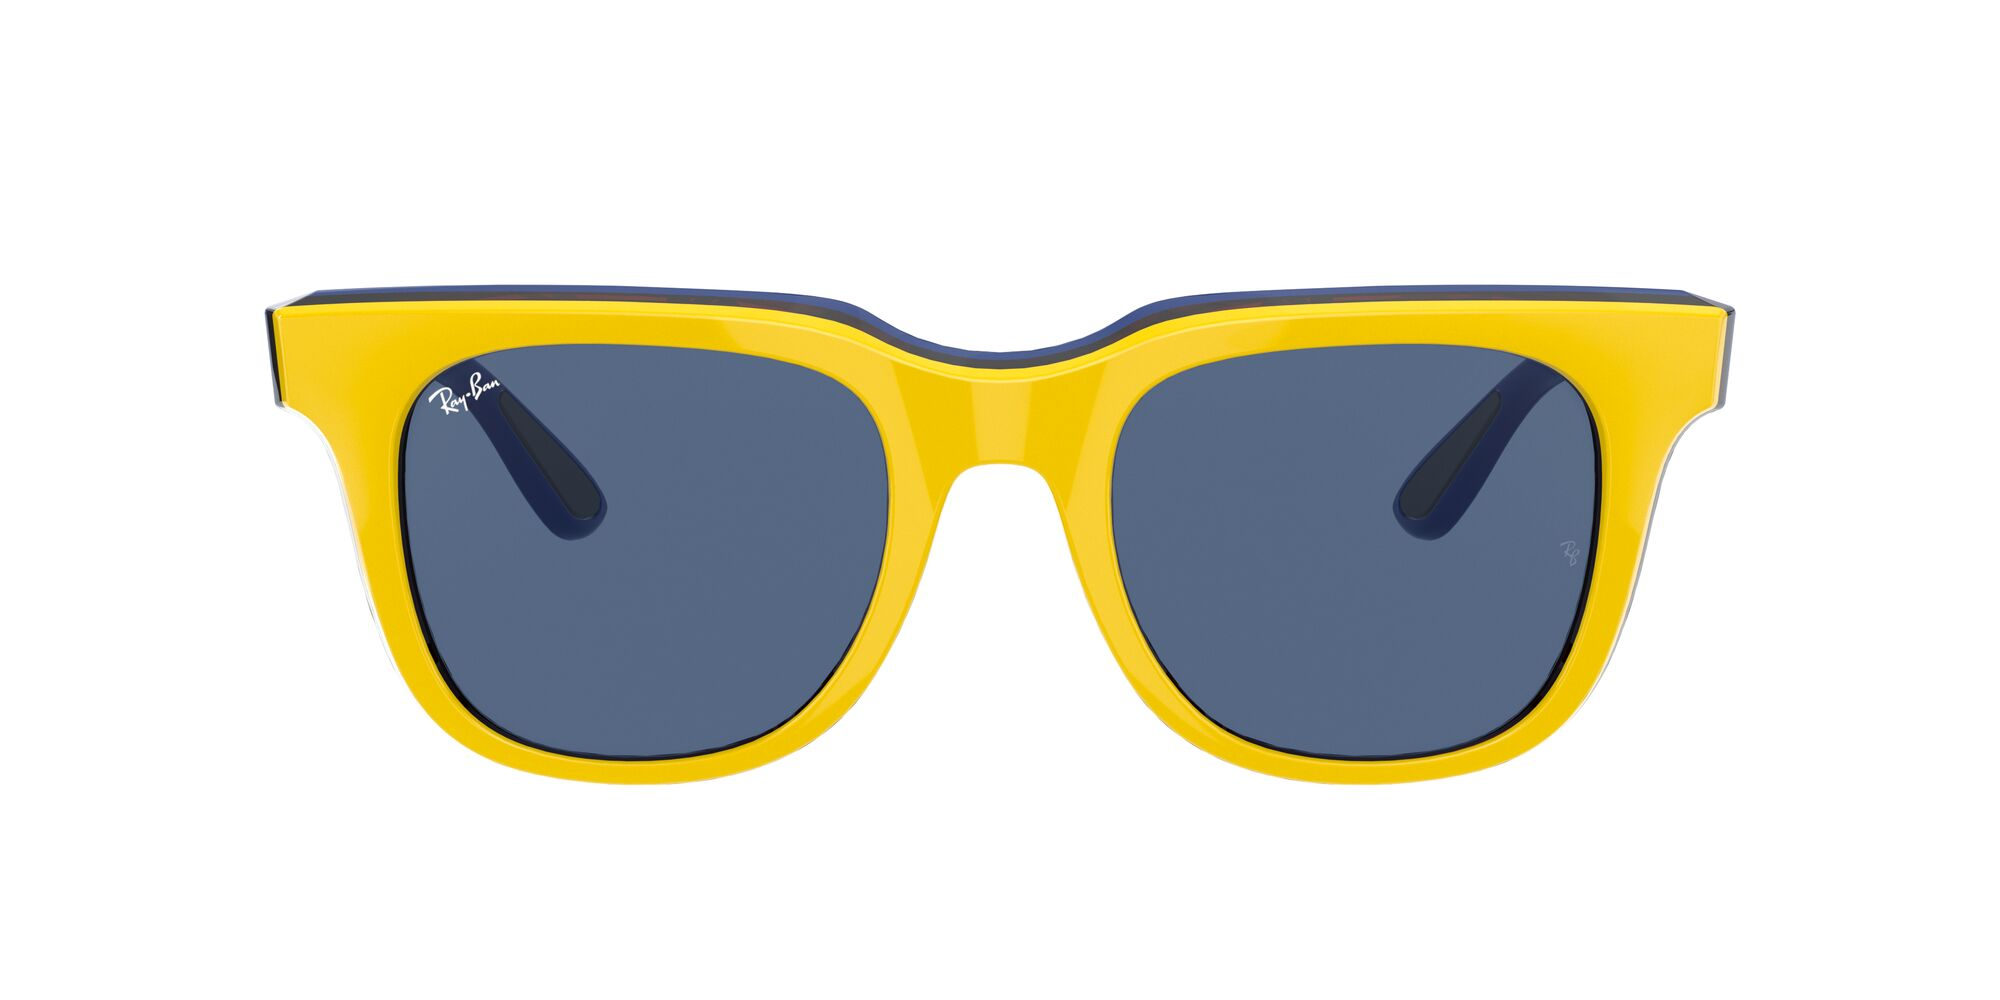 Front Ray-Ban Ray-Ban 0RB4368 652580 0/21 Geel/Blauw